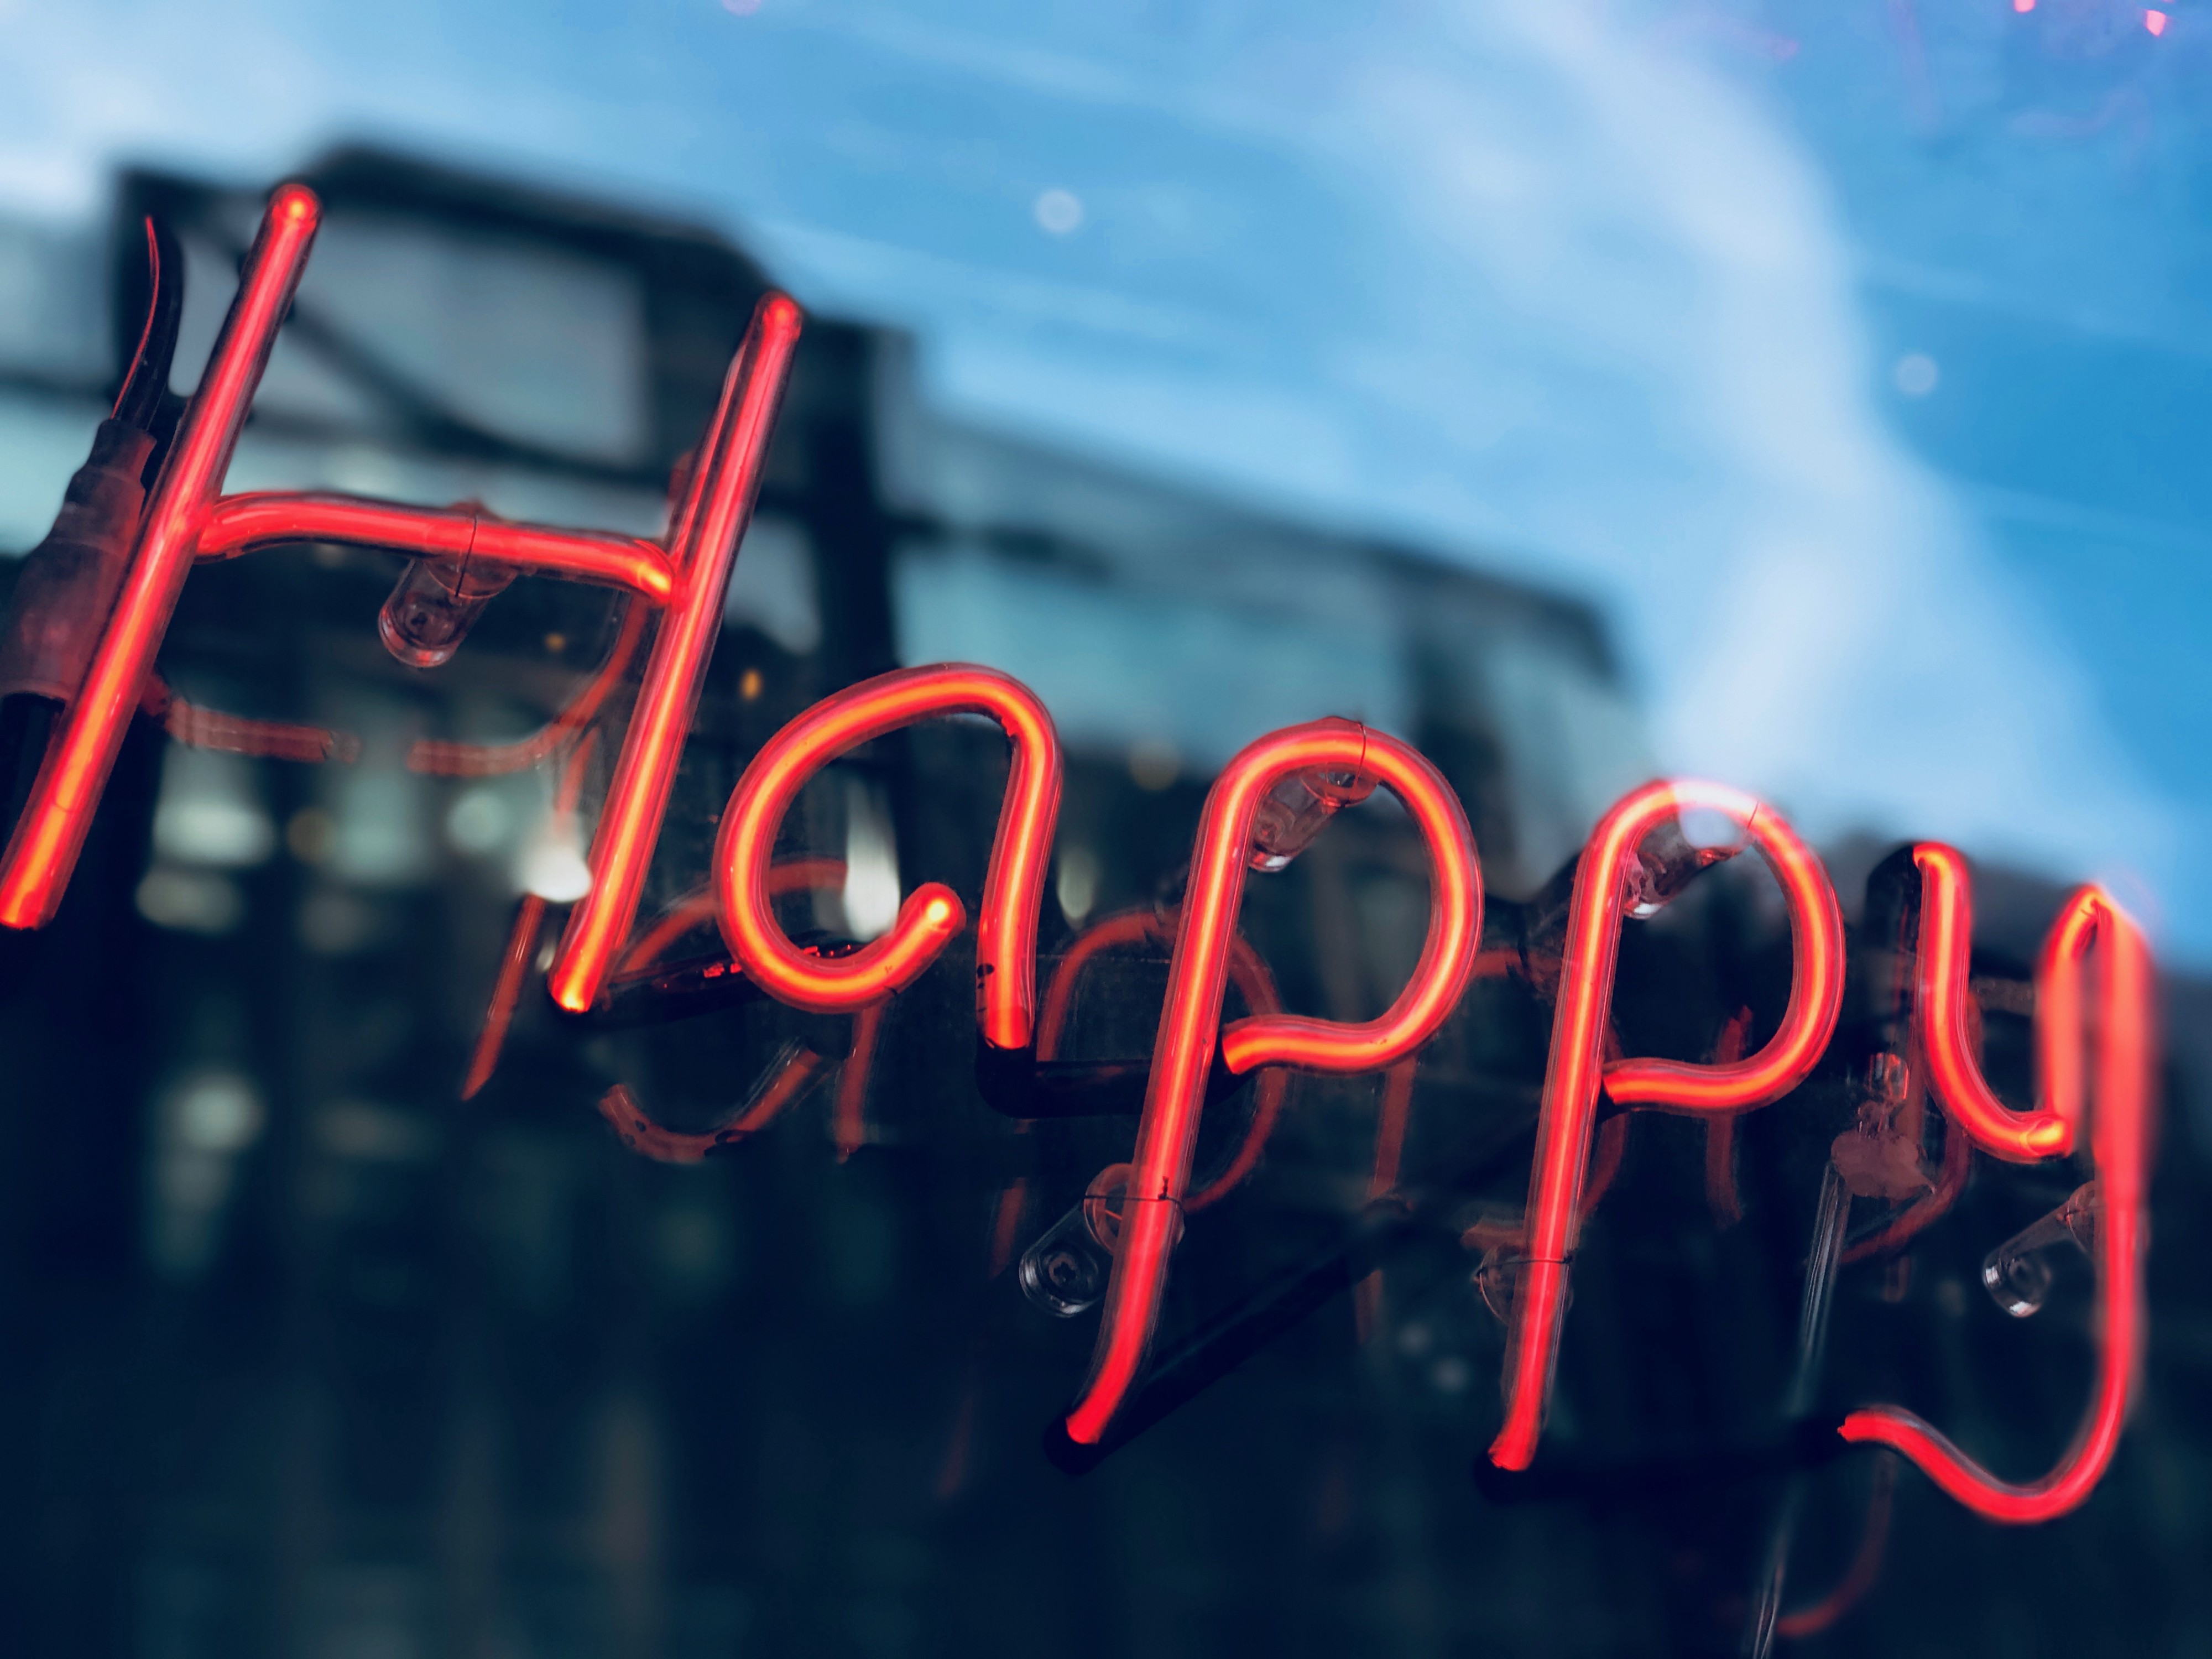 Electric lights in red that spell happy.